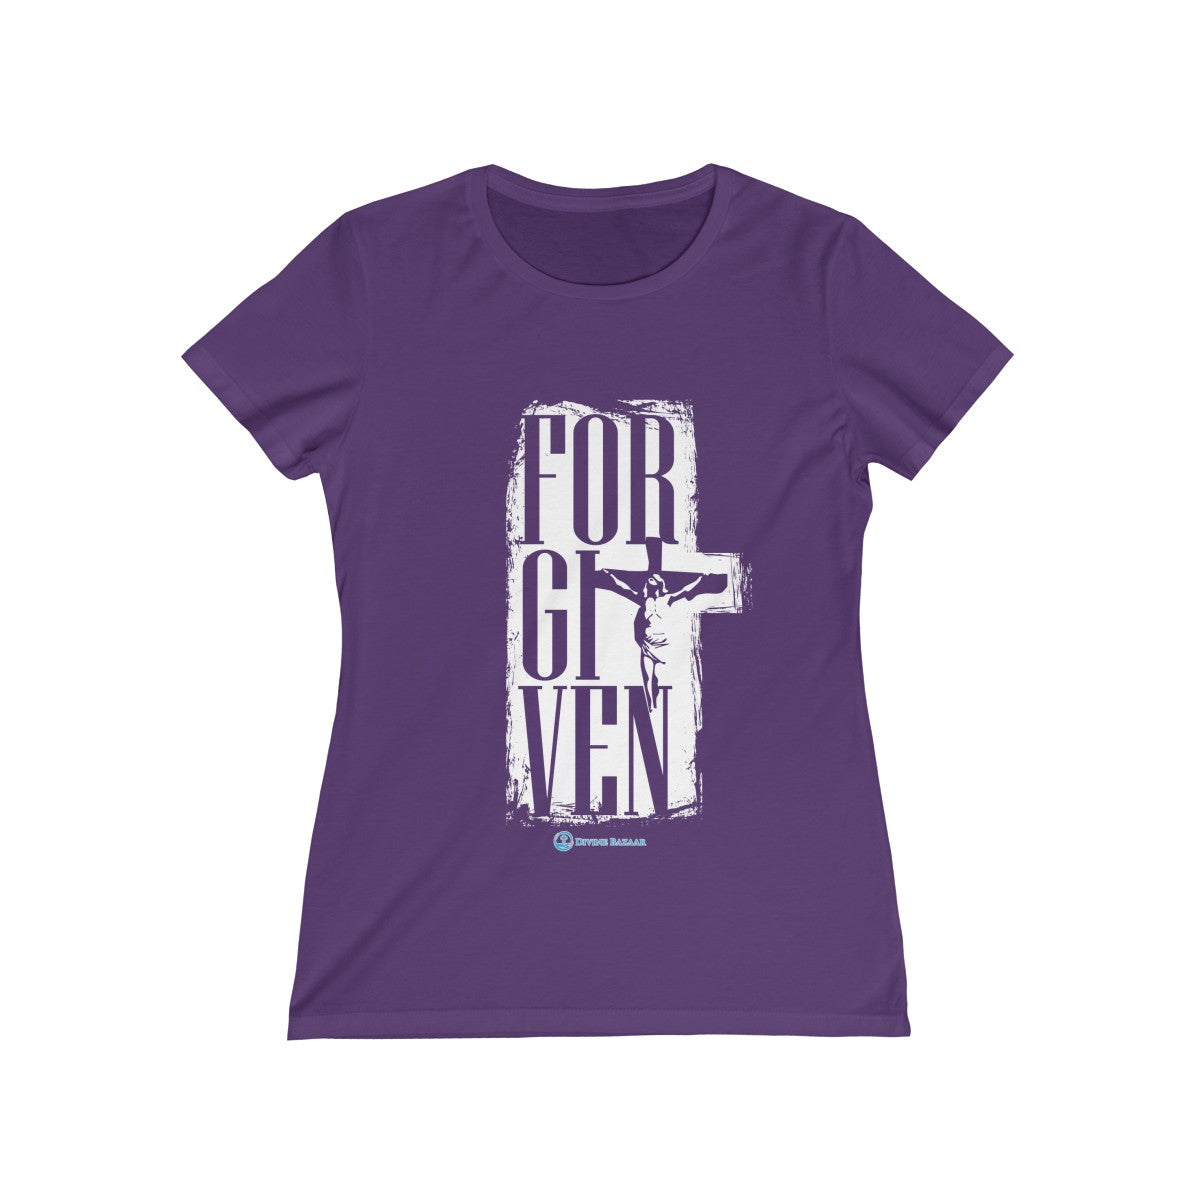 Always Forgiven Women's Missy Tee